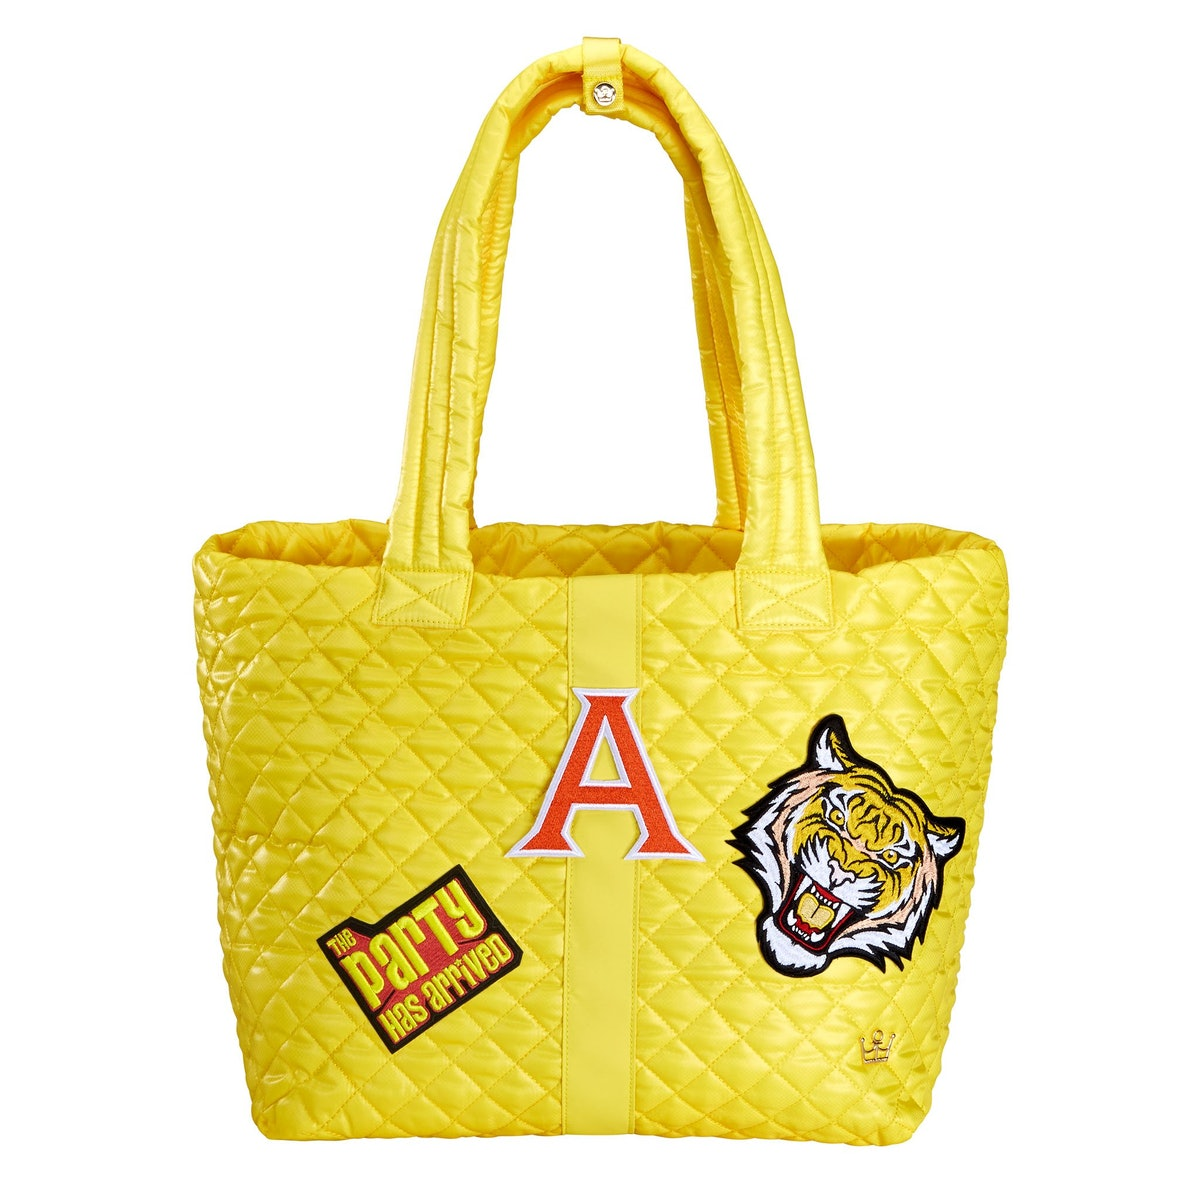 Wingwoman Tote Large in Citron